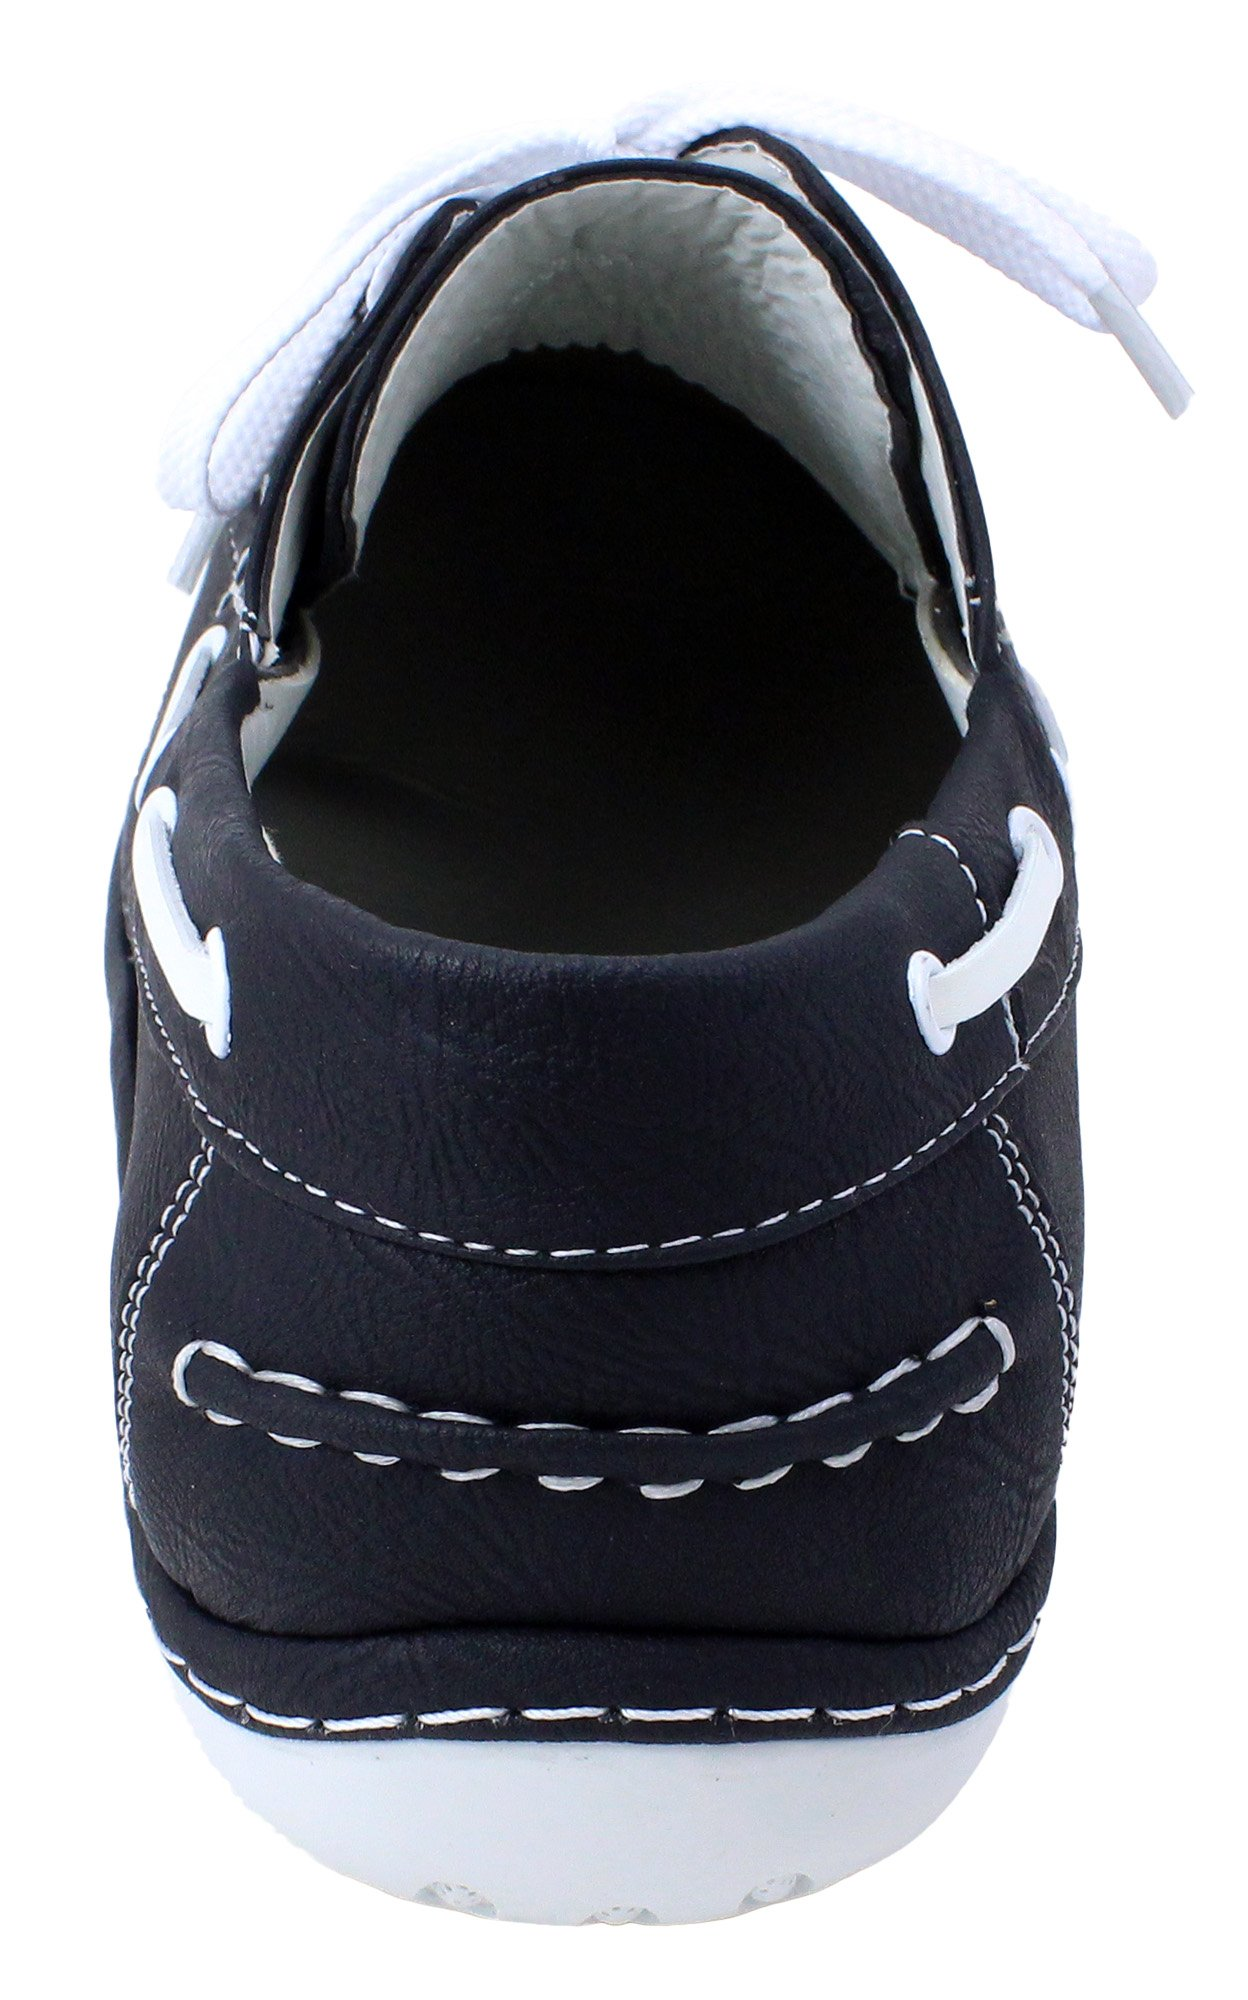 Enimay Men's Free Slip-On Loafer Boat Shoe PU Leather Fine Crafted Lounge Black White 8.5 by Enimay (Image #3)